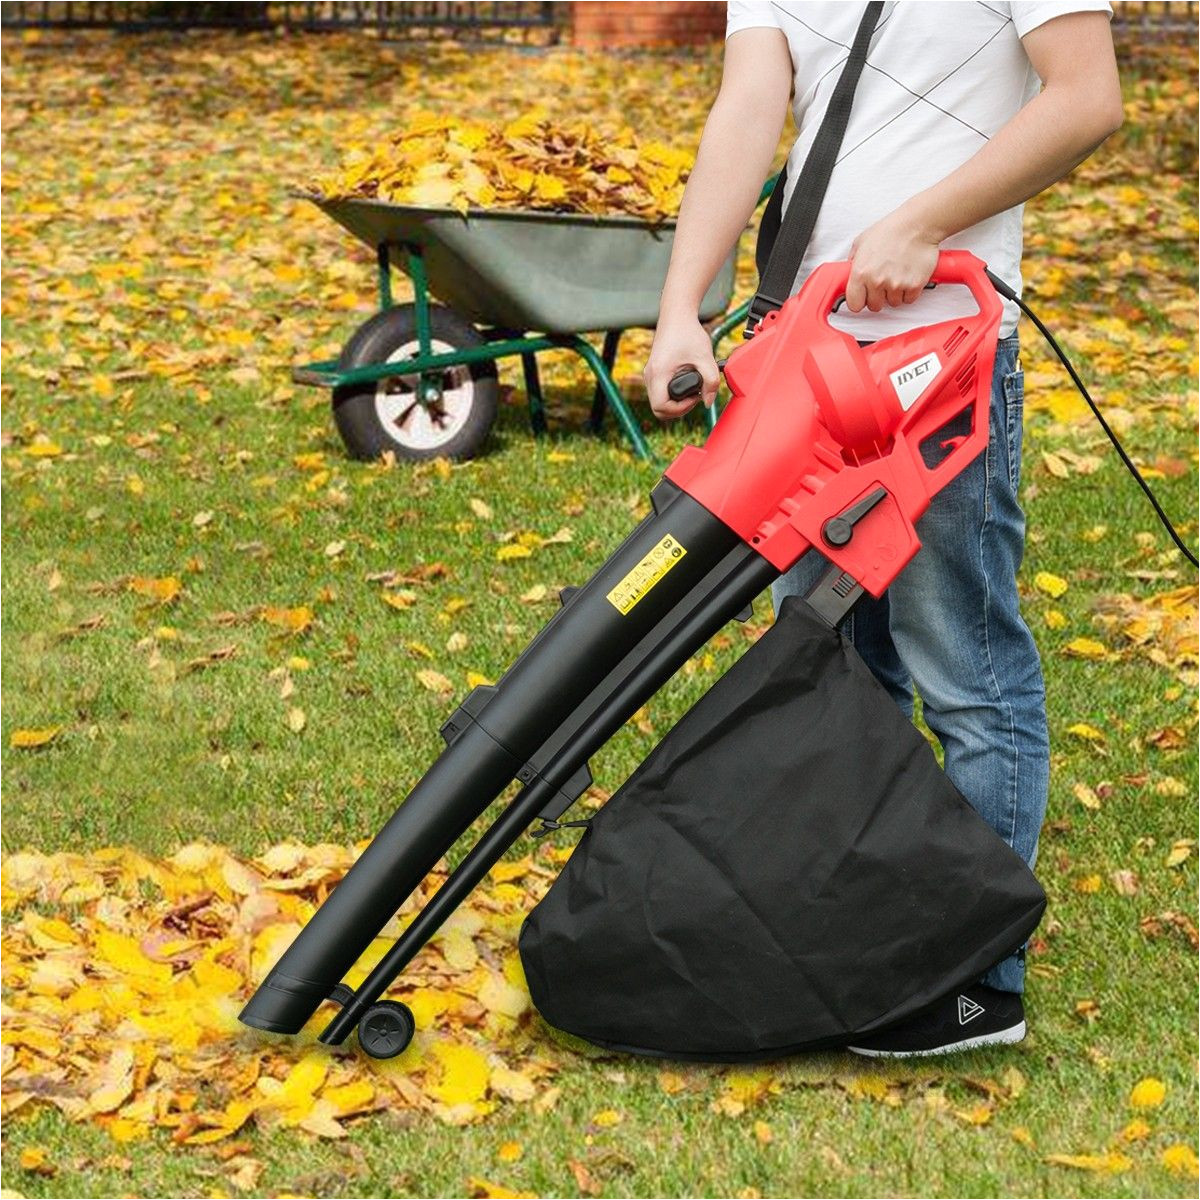 costway 3 in 1 electric garden grass leaf blower 2500w 230v vacuum shredder mulcher vac our leaf blower is ideal for keeping lawns patios and driveways